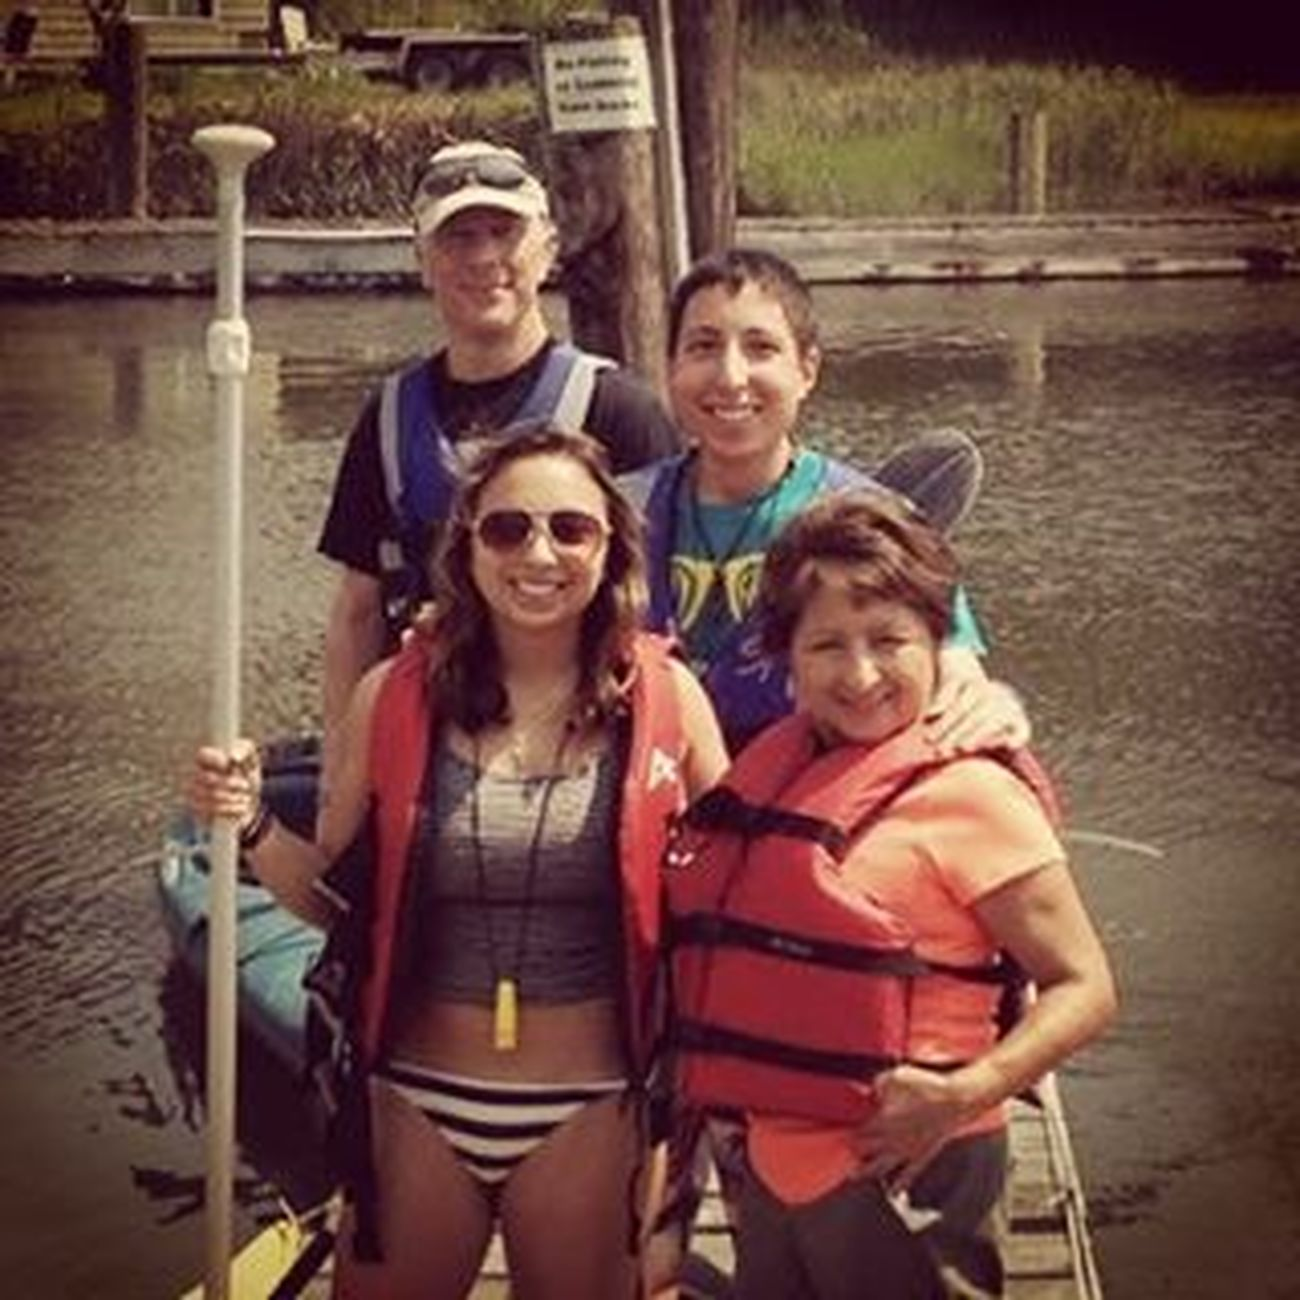 Family Kayaking. BeILL StayILL ILLstrong Kayaks daytrip family minussteve wheresfresco love madison Connecticut tippedovertwice laughs paddleboarding fit river ct fun experieces memories adventure liveinthemoment